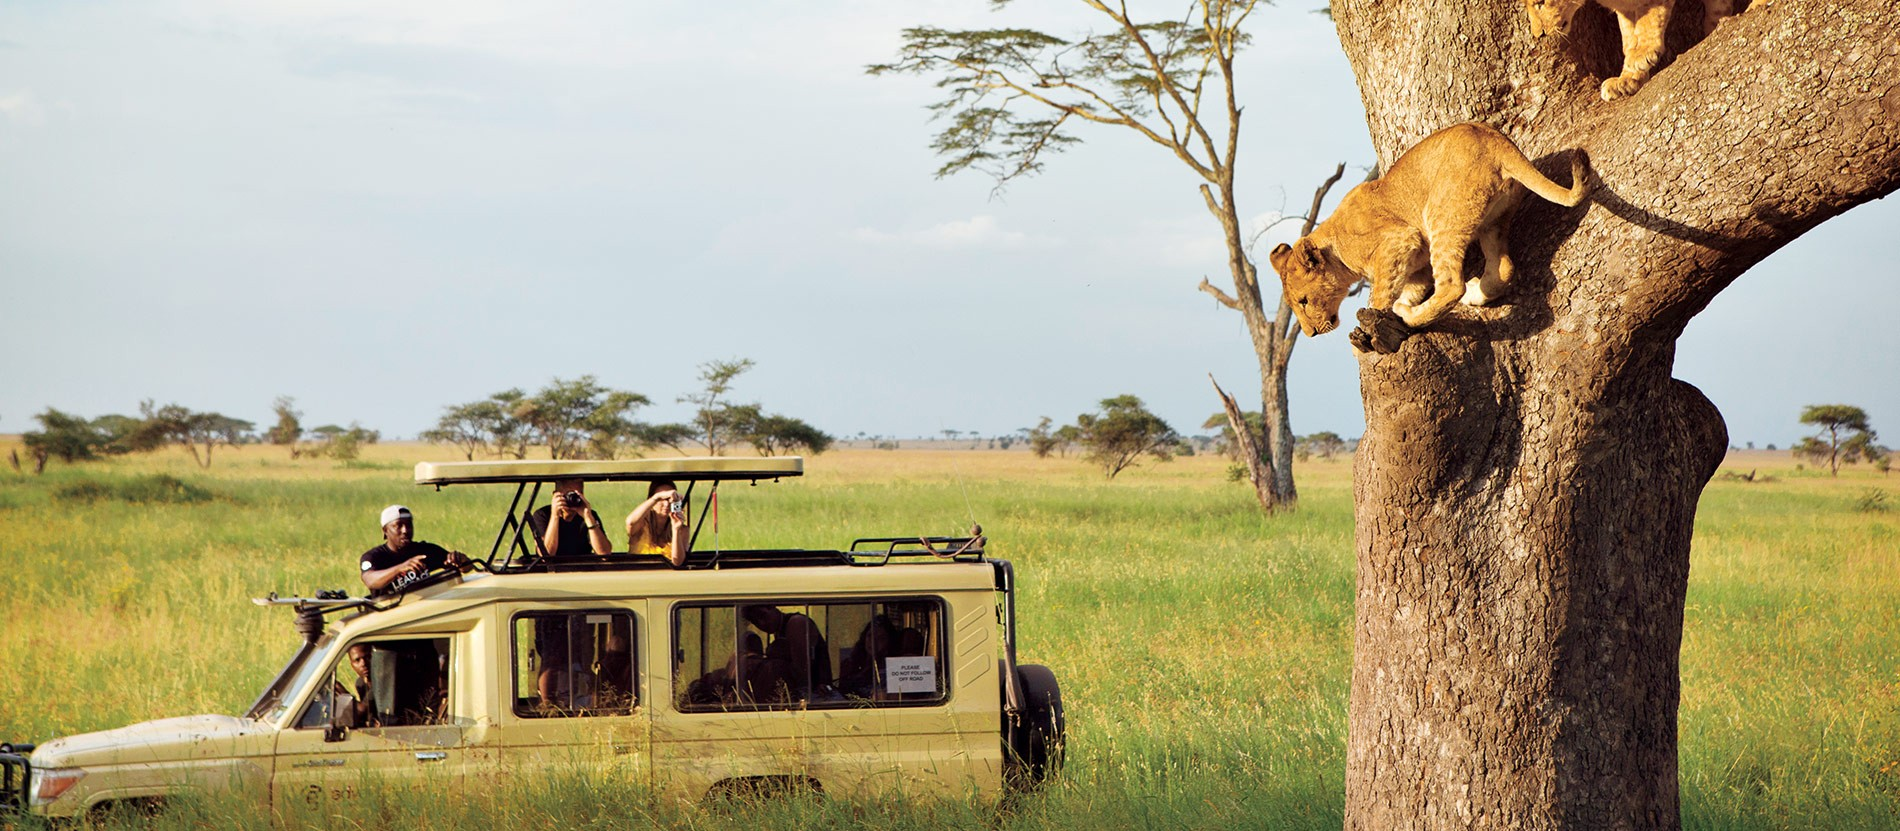 5 Day Tanzania Experience Safari Tour